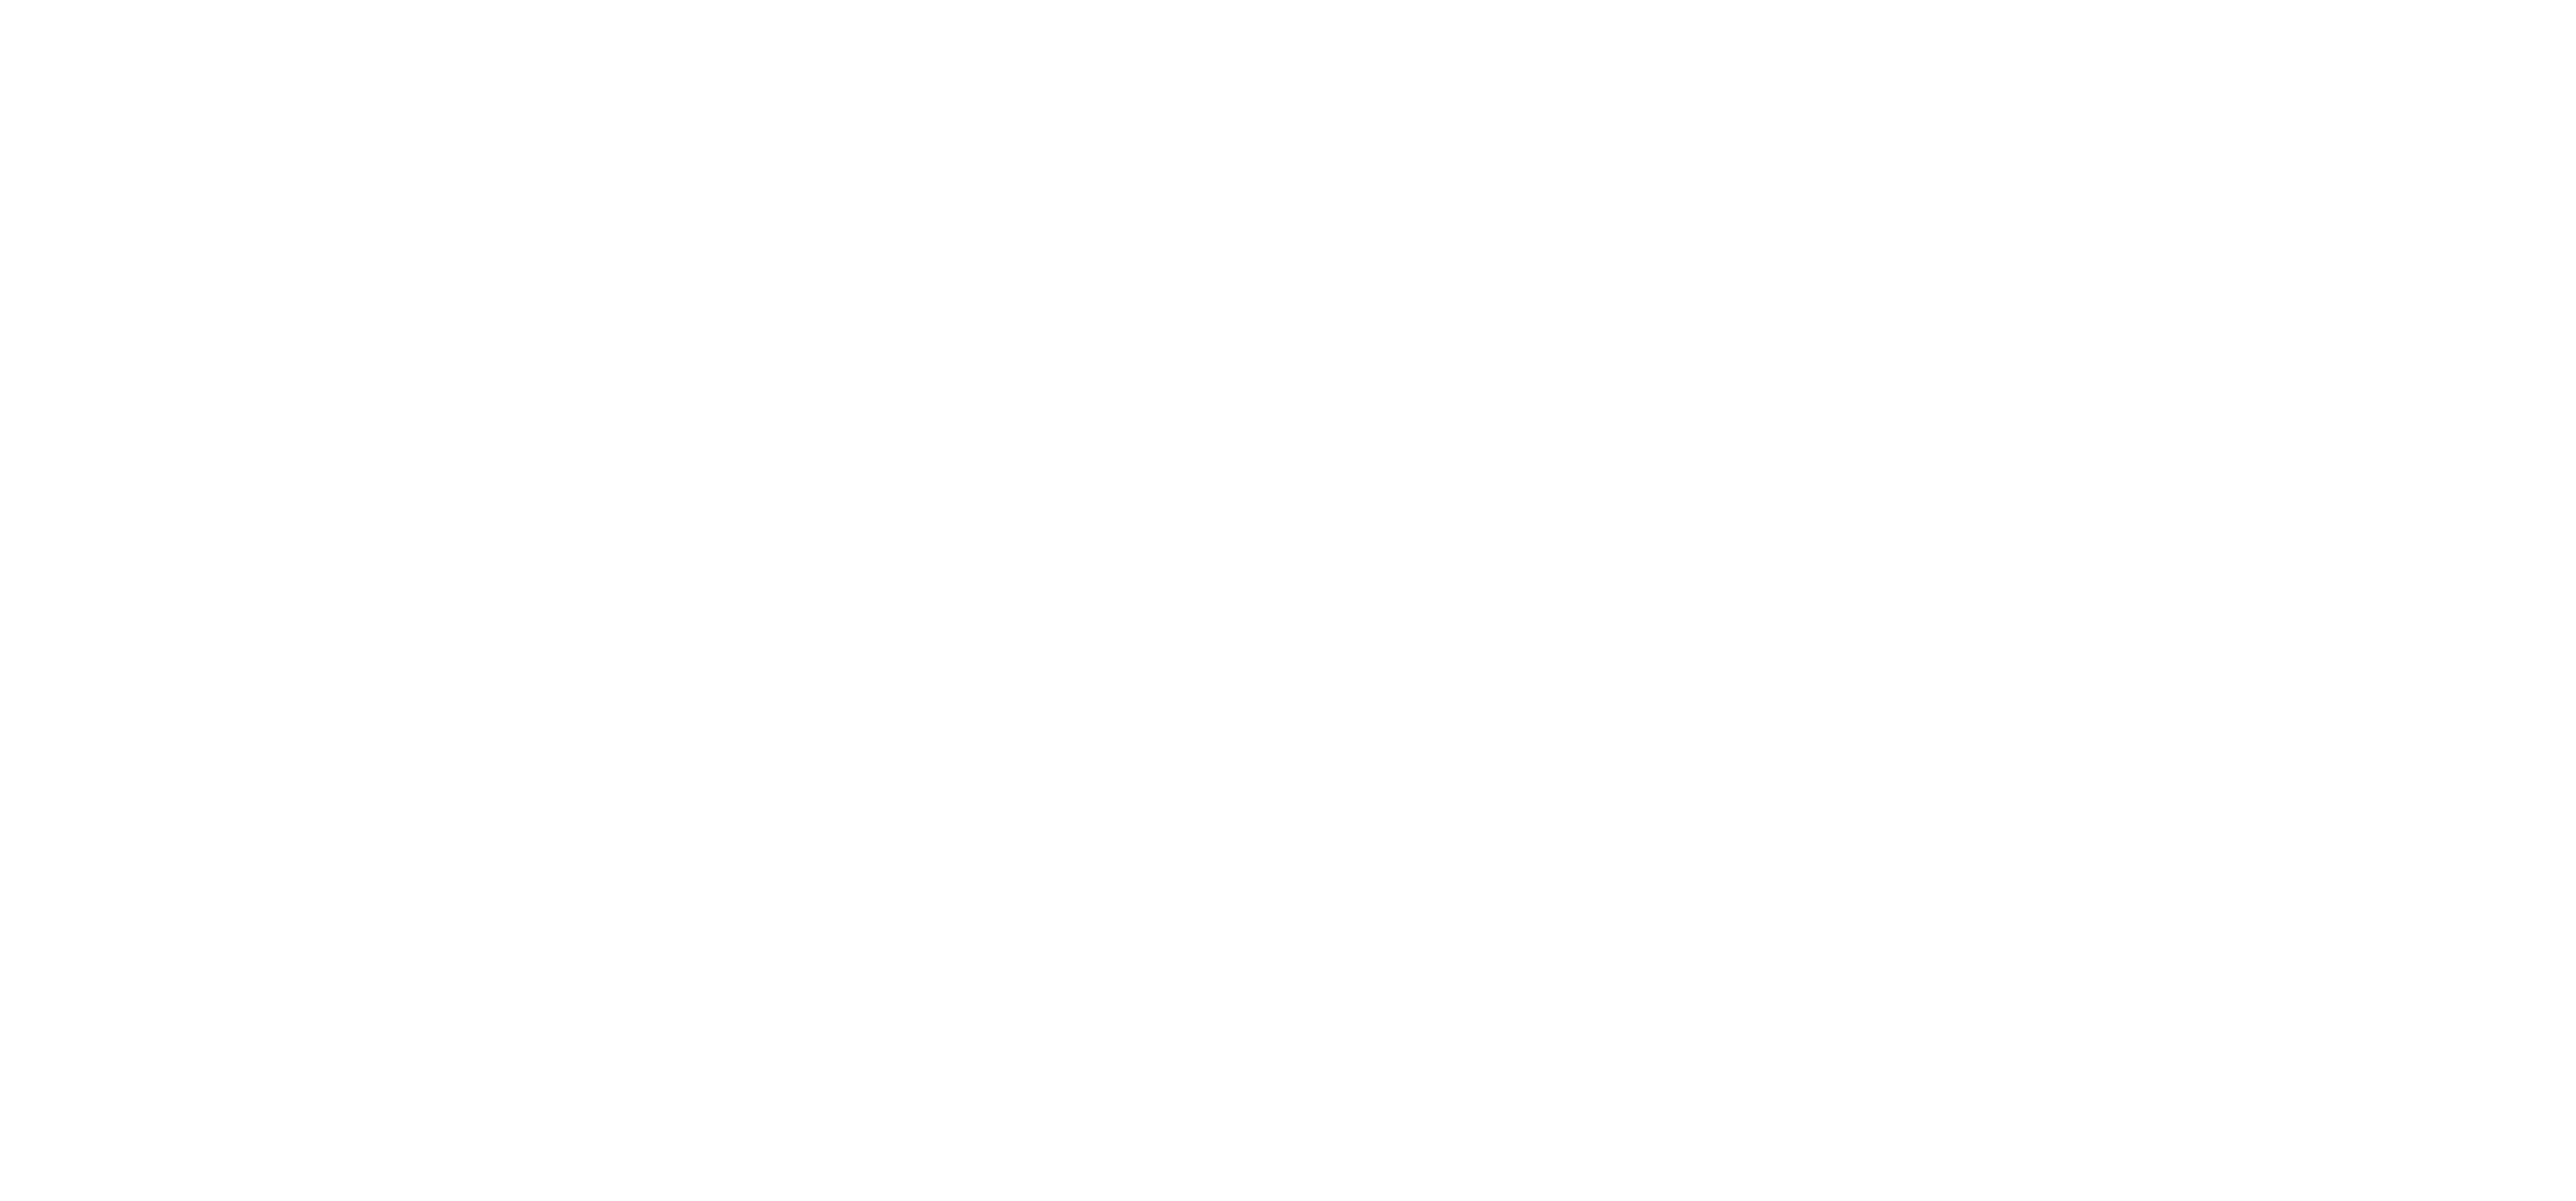 Southern Downs & Granite Belt